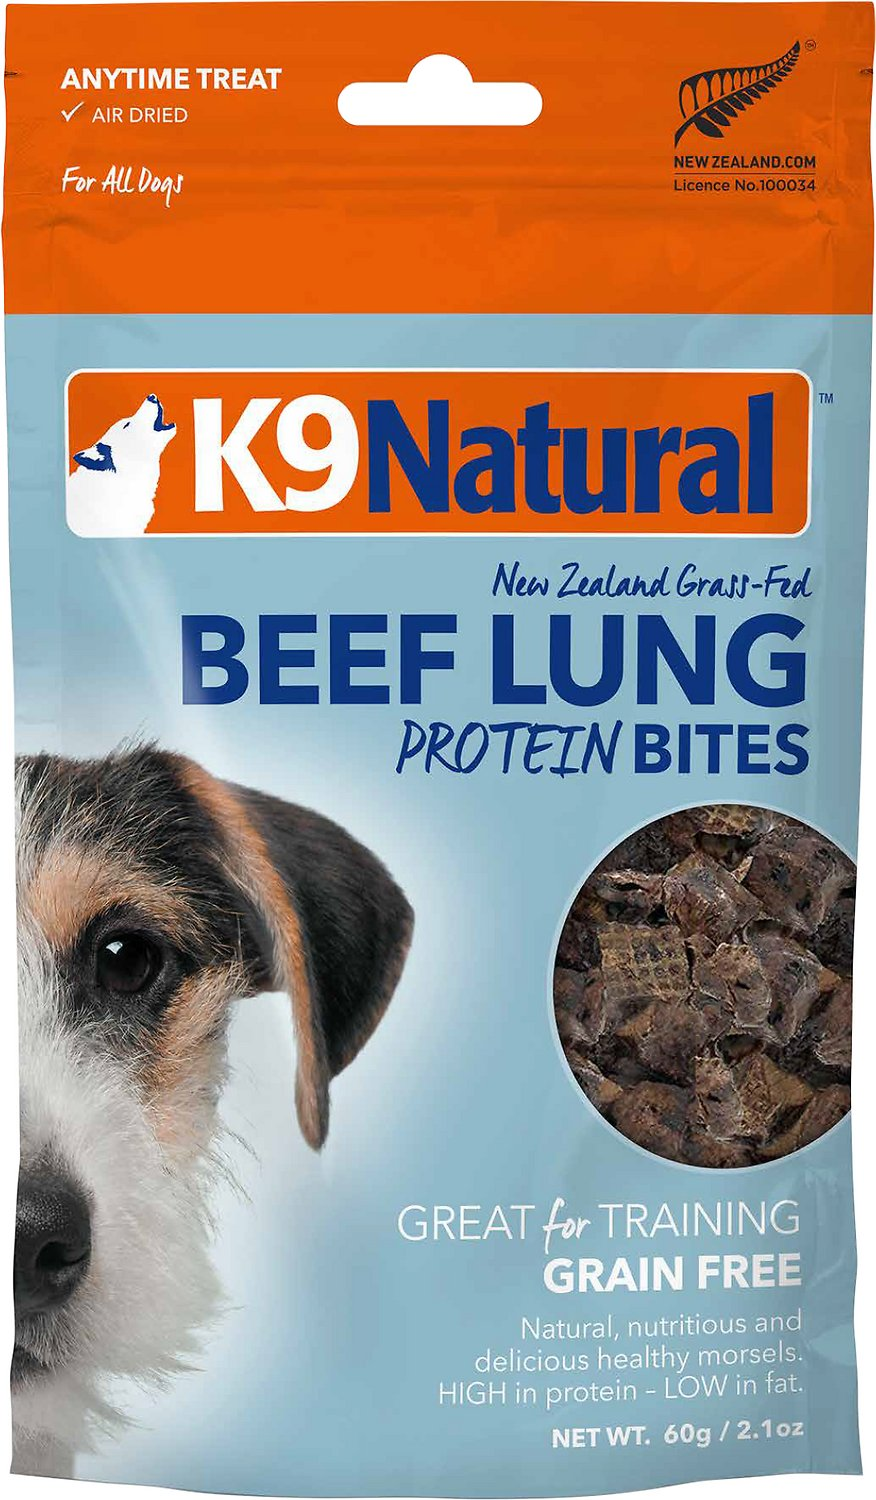 K9 Natural Beef Lung Protein Bites Air-Dried Dog Treats, 2.1-oz